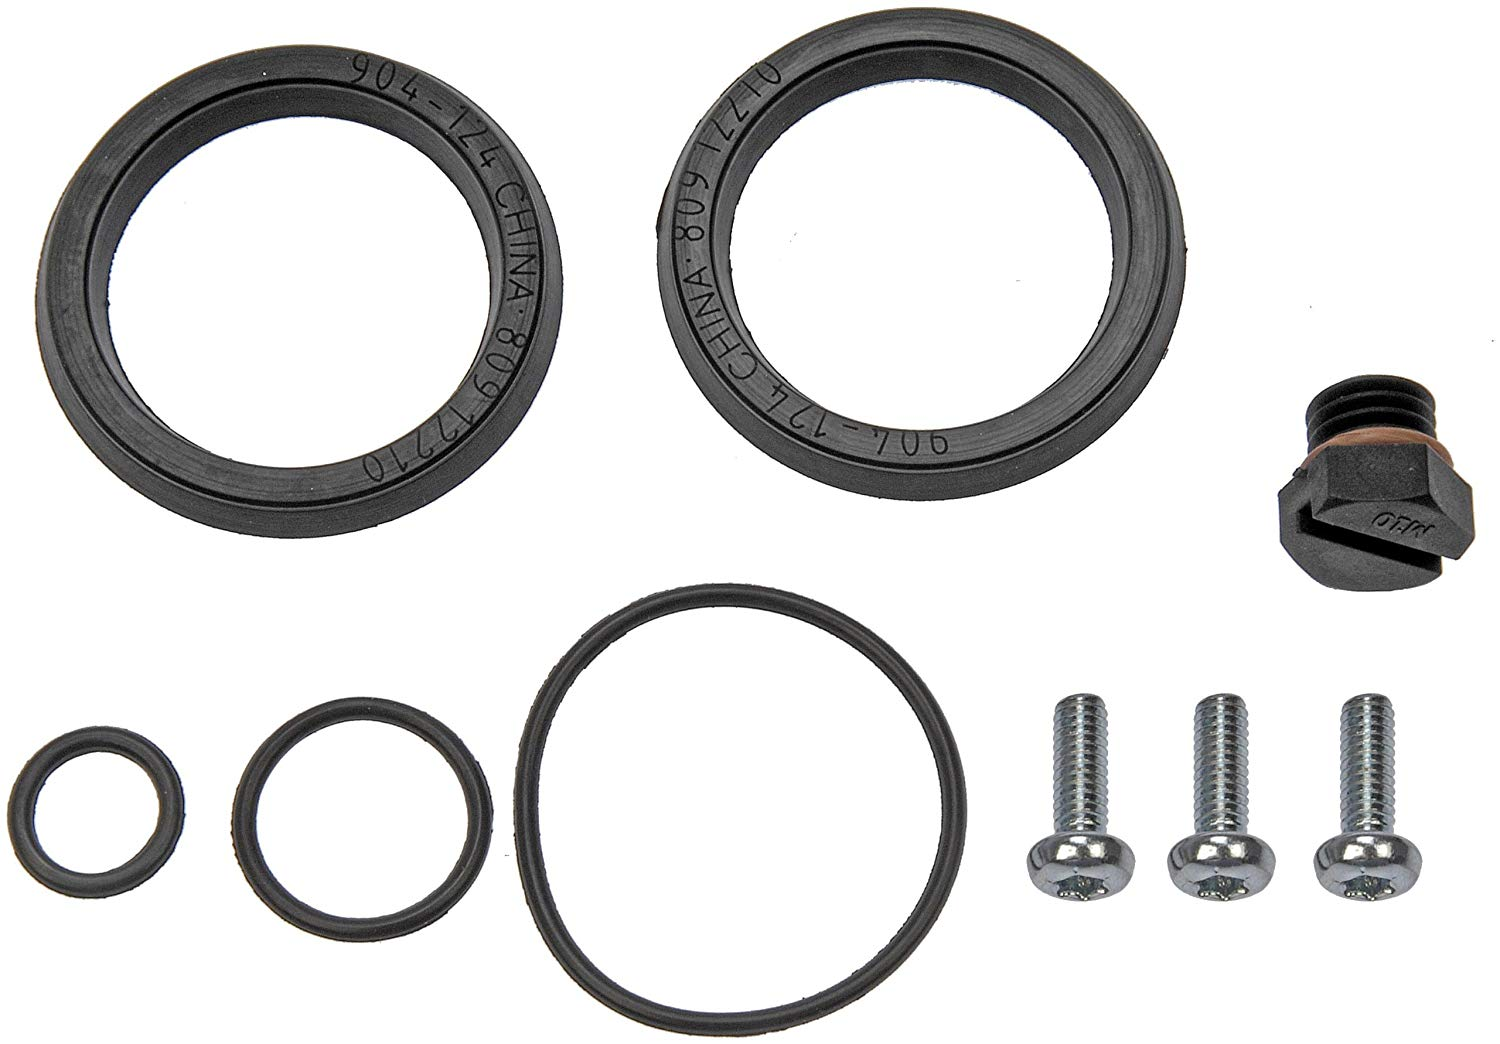 904-124 Primer Fuel Filter Seal Kit, Replace just the